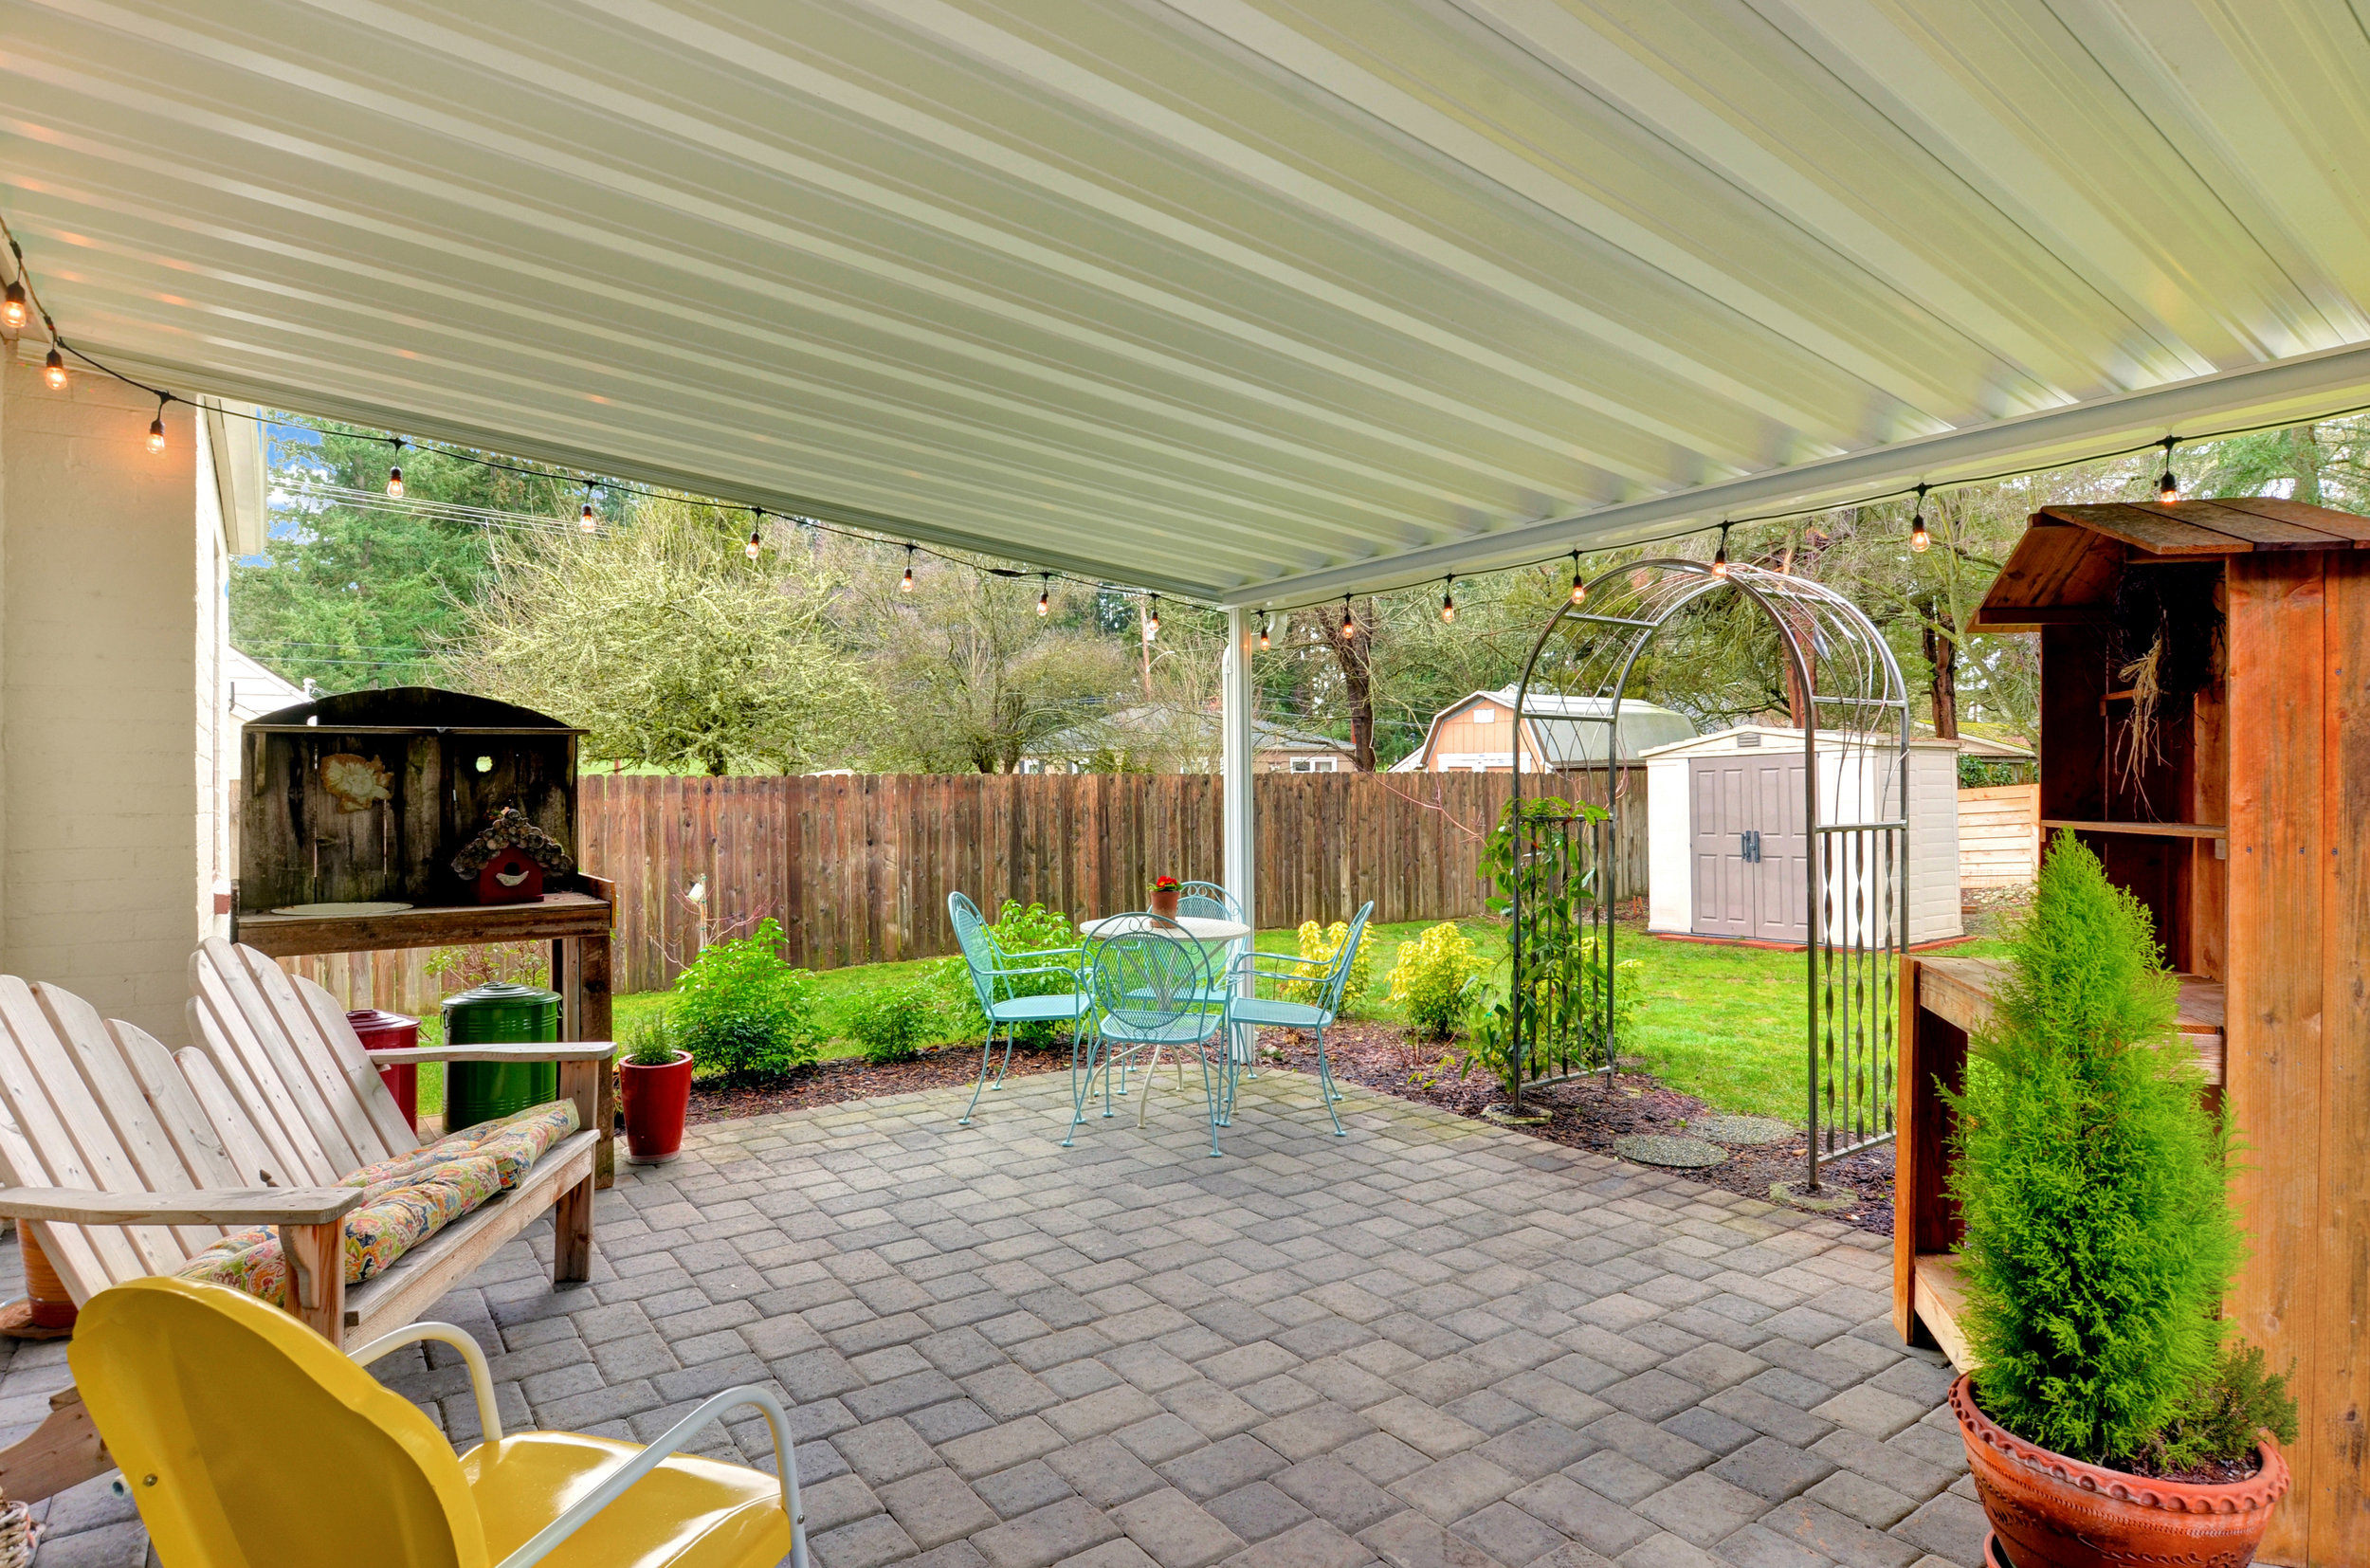 Set up your bbq, comfiest patio furniture, pretty potted plants, and enjoy. Step under the clematis growing on the arbor to reach the back lawn and storage shed.